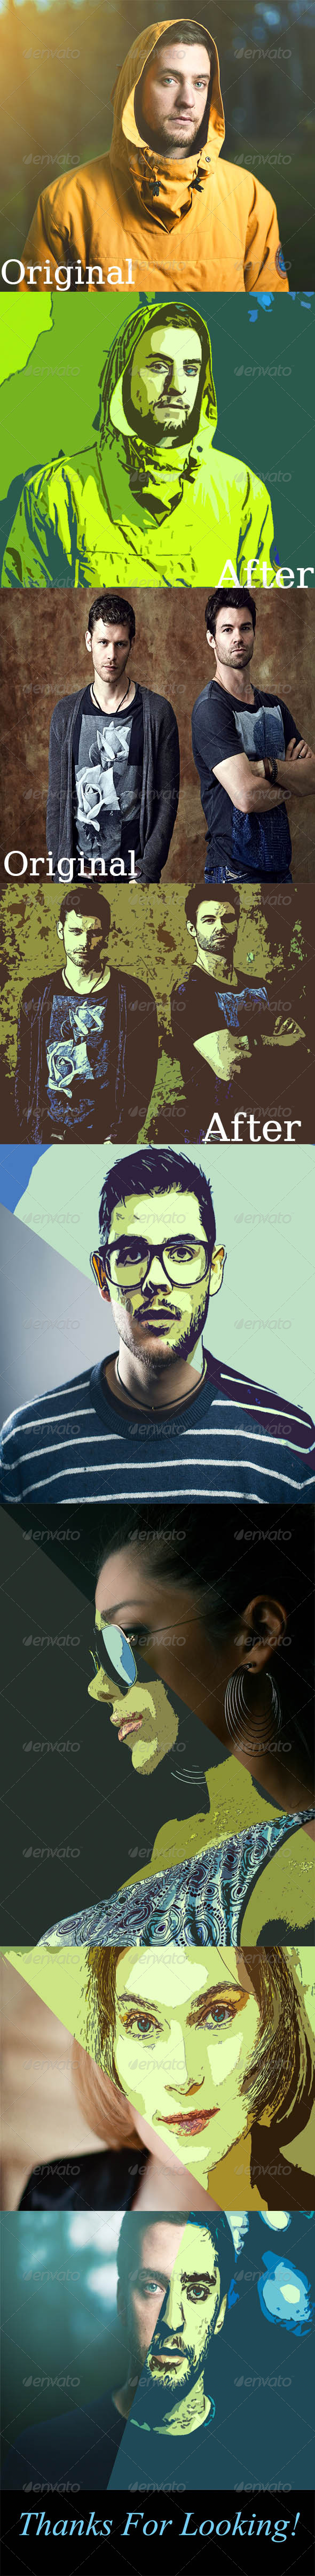 GraphicRiver Vintage Photo Actions 7742715